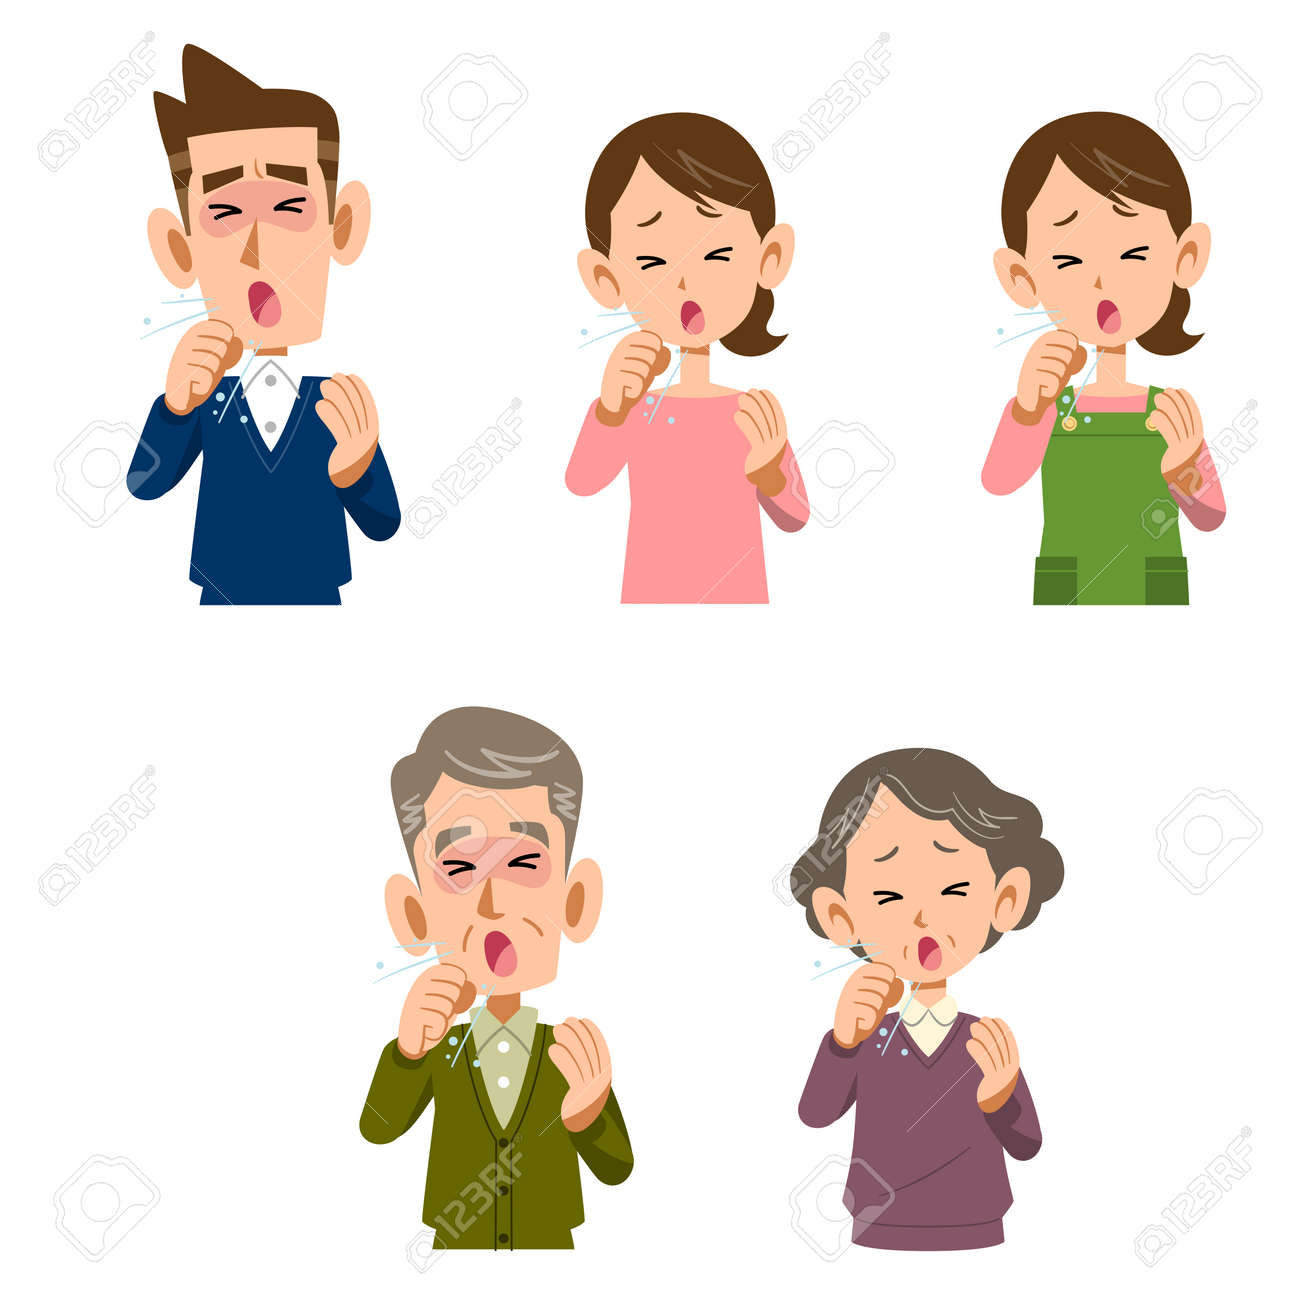 Men and women coughing - 63016614